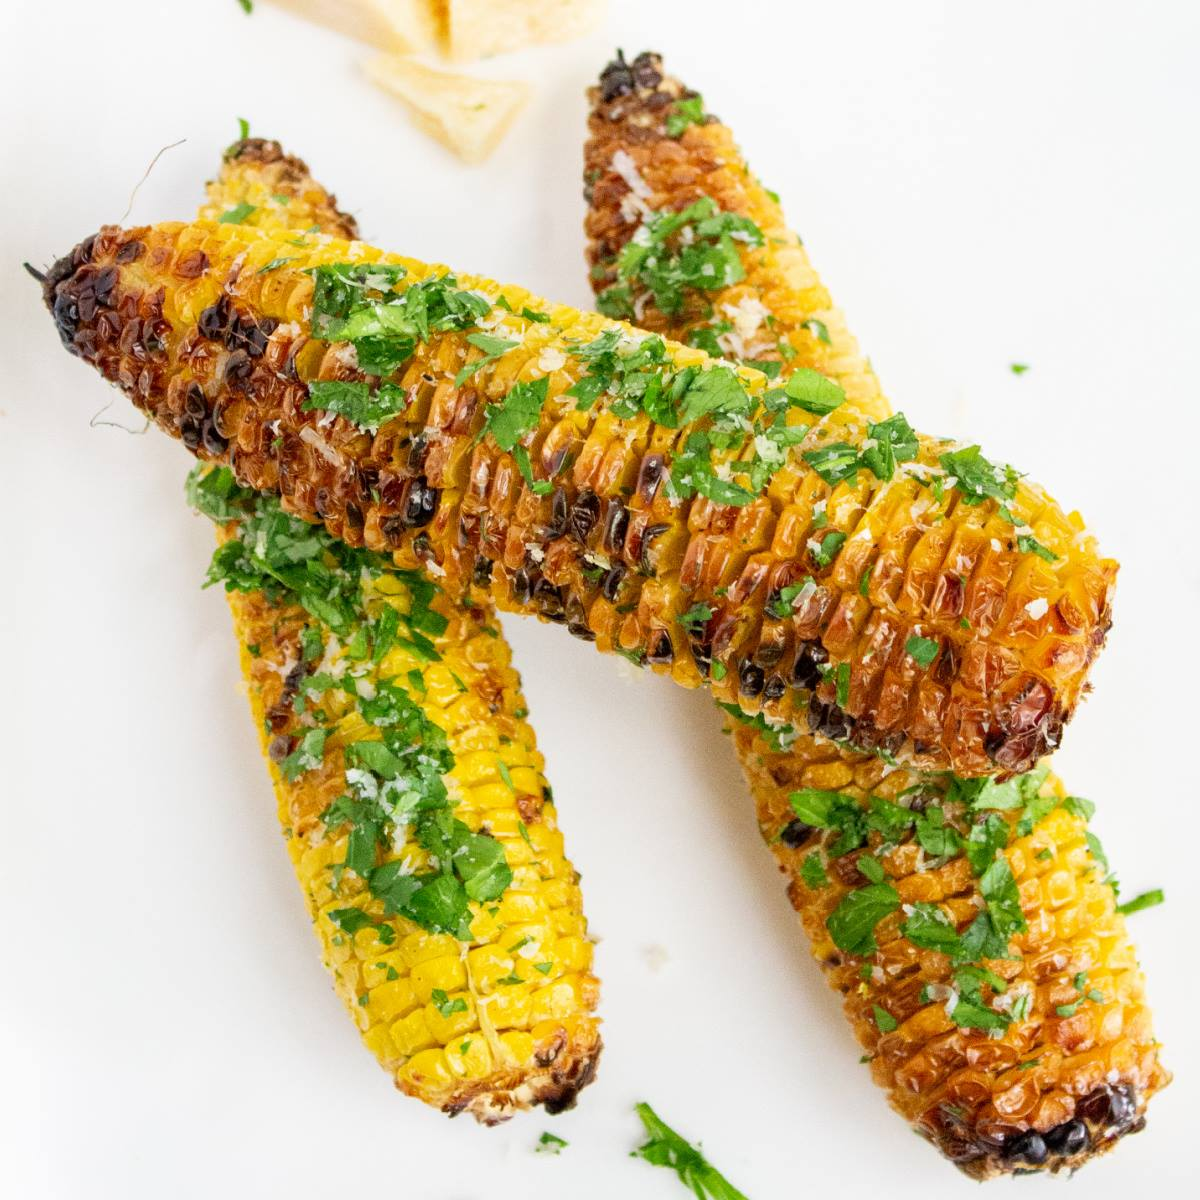 3 cobs or grilled corn and the cob on a white plate with grated parmesan and chopped parsley